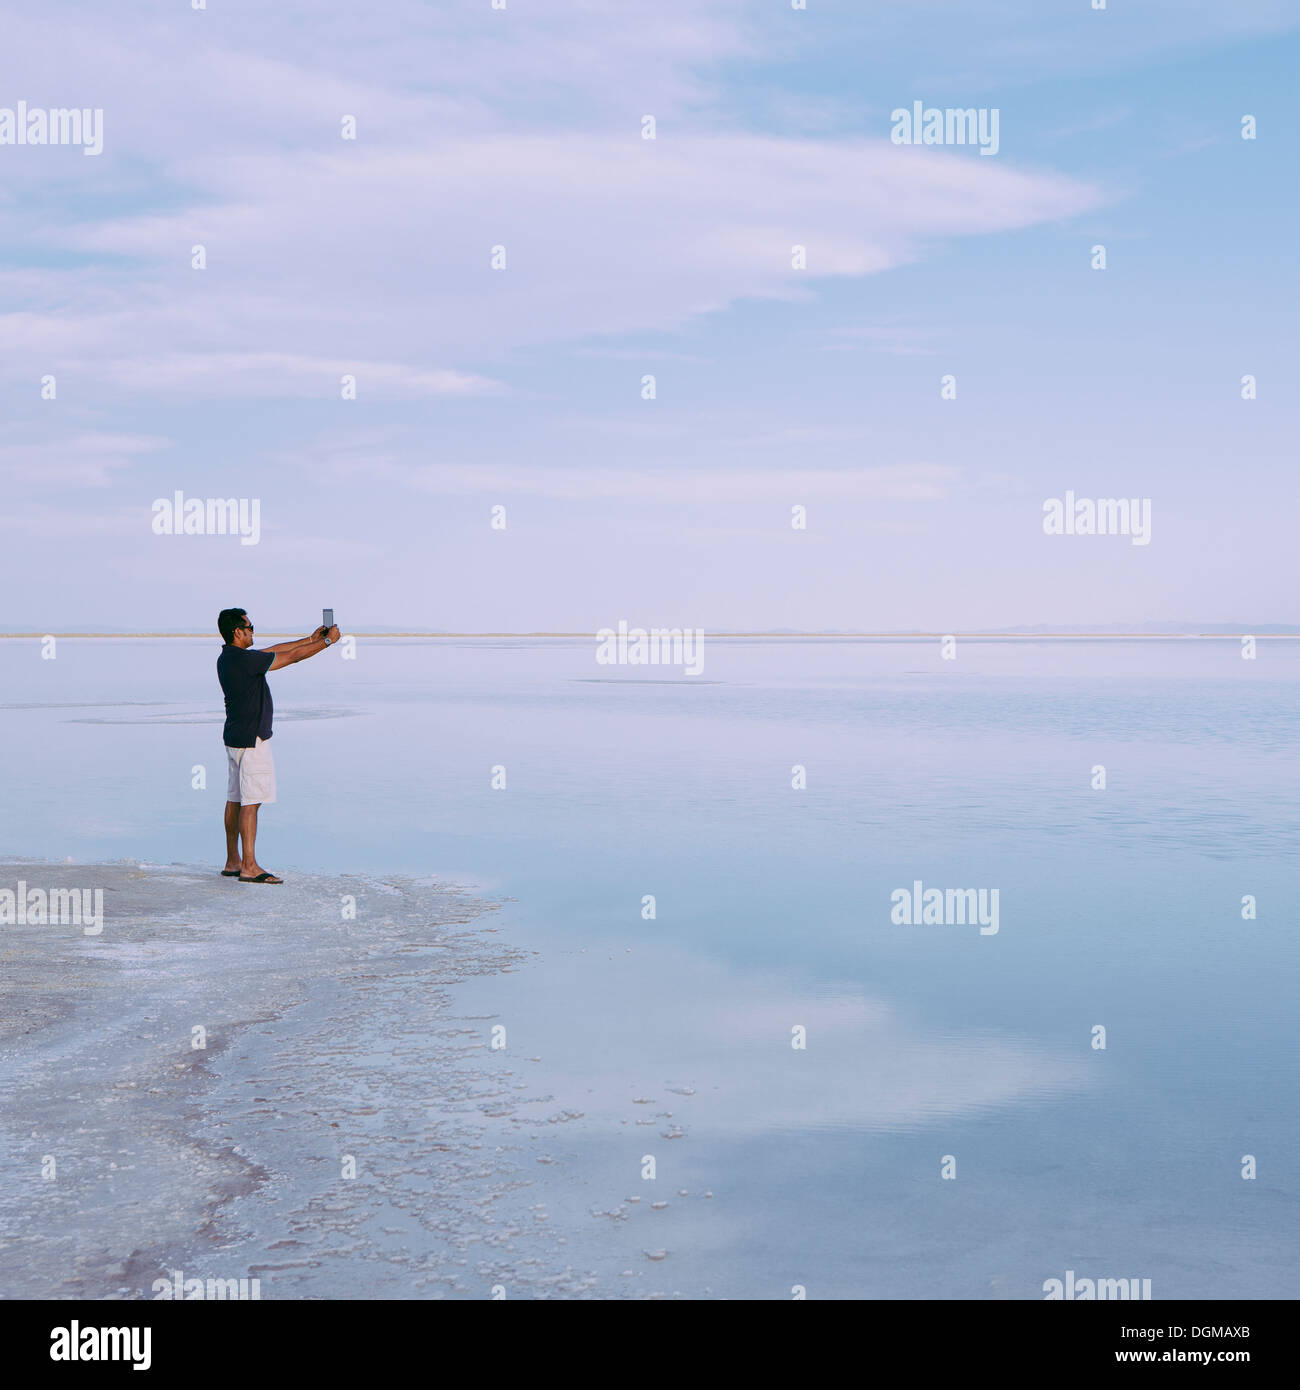 A man standing at edge of the flooded Bonneville Salt Flats at dusk, taking a photograph with a tablet device, near Wendover. - Stock Image